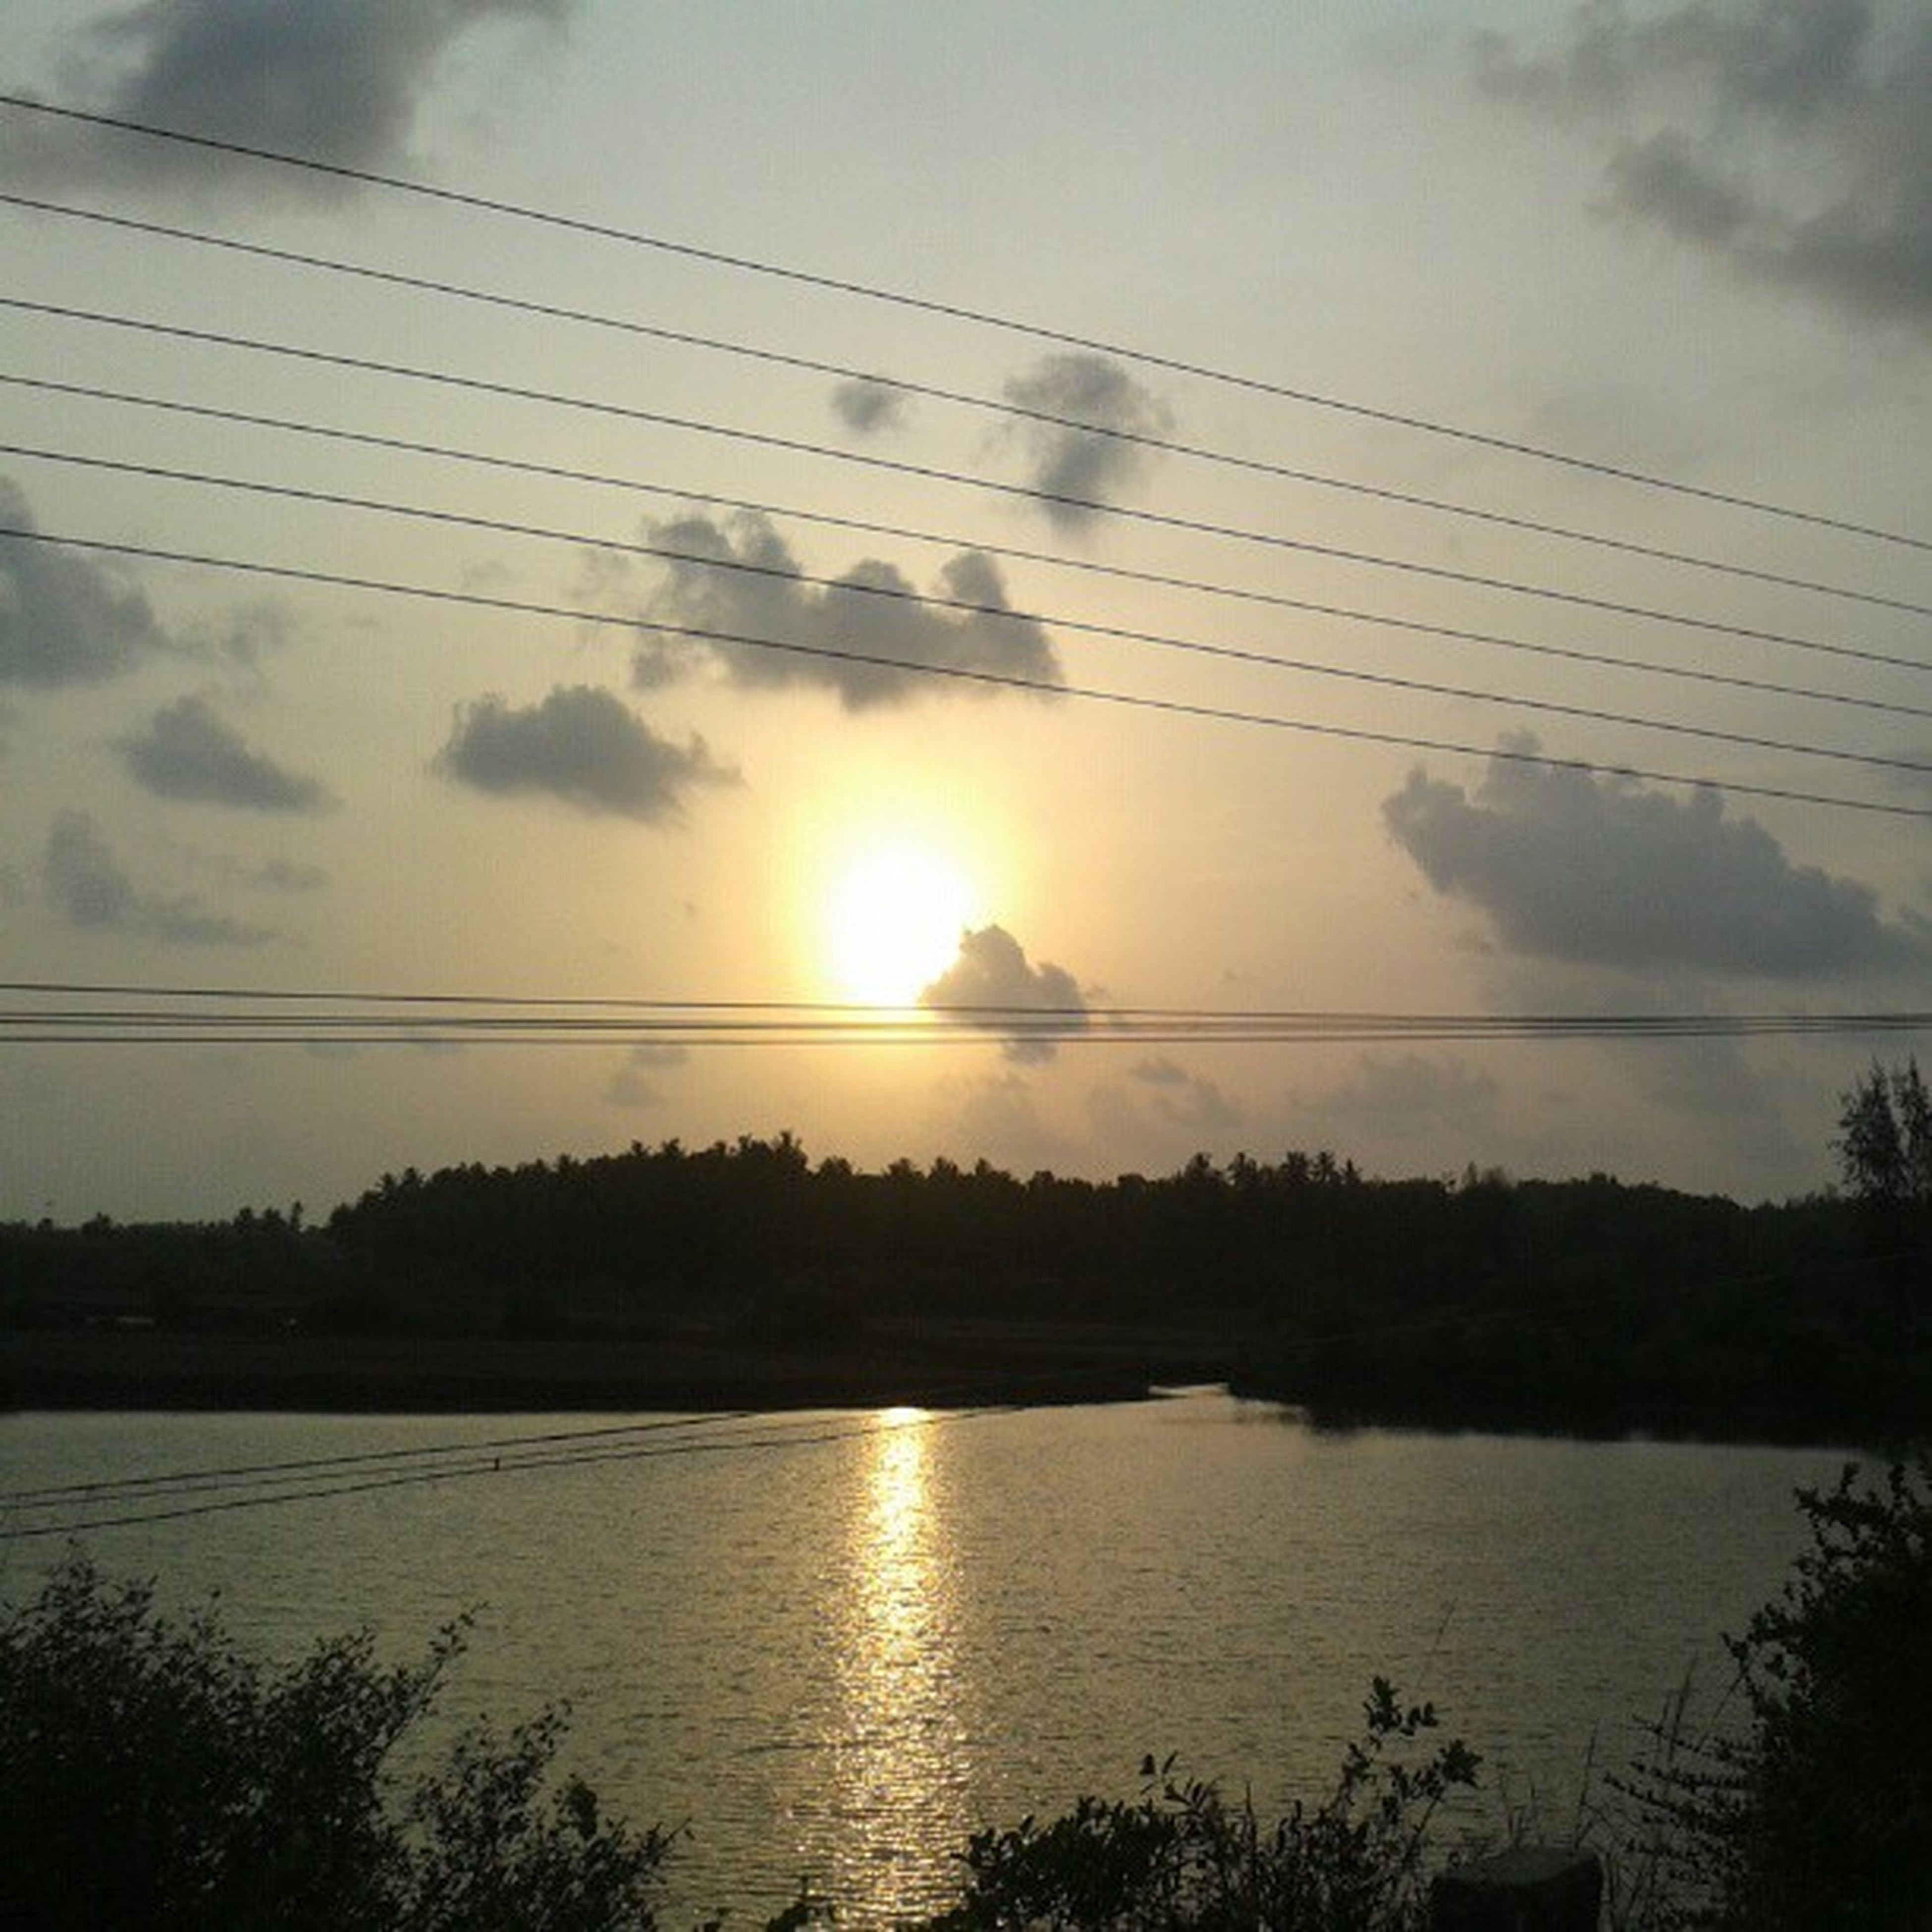 sunset, sky, water, tranquility, tranquil scene, sun, scenics, power line, reflection, beauty in nature, electricity pylon, cloud - sky, silhouette, nature, lake, cloud, idyllic, cable, sunlight, river